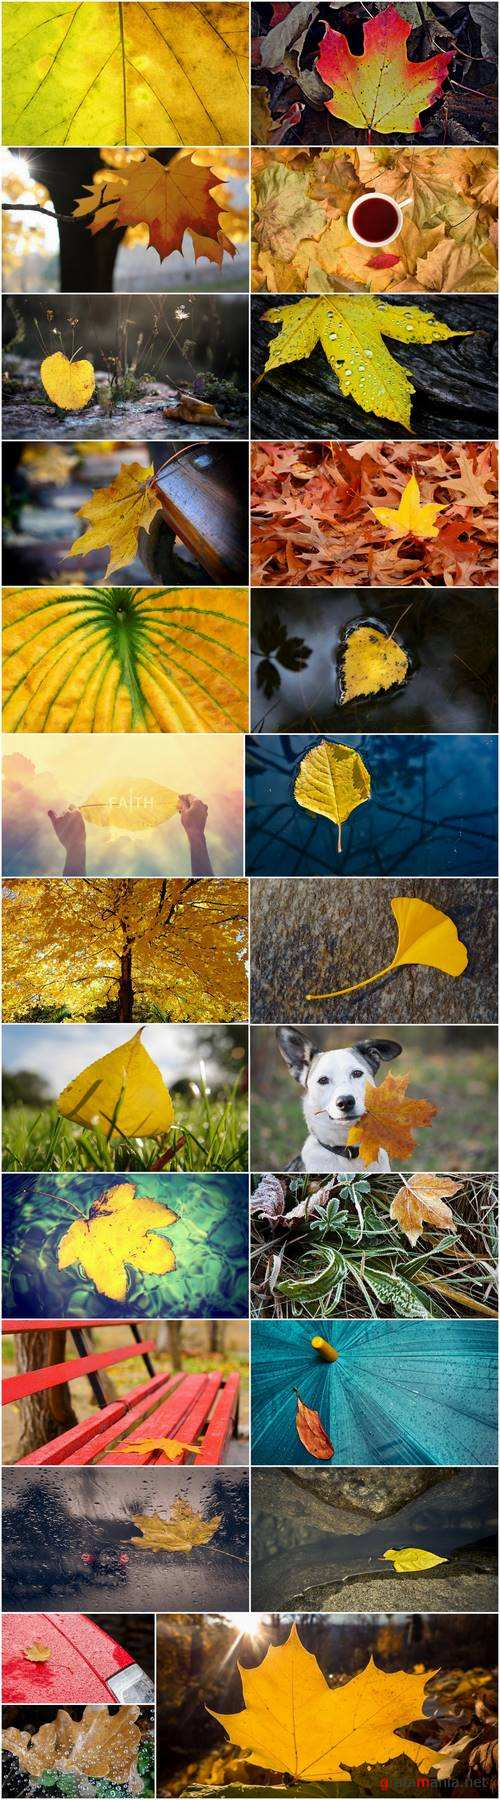 Yellow leaf close-up image background is rain forest nature landscape 25 HQ Jpeg